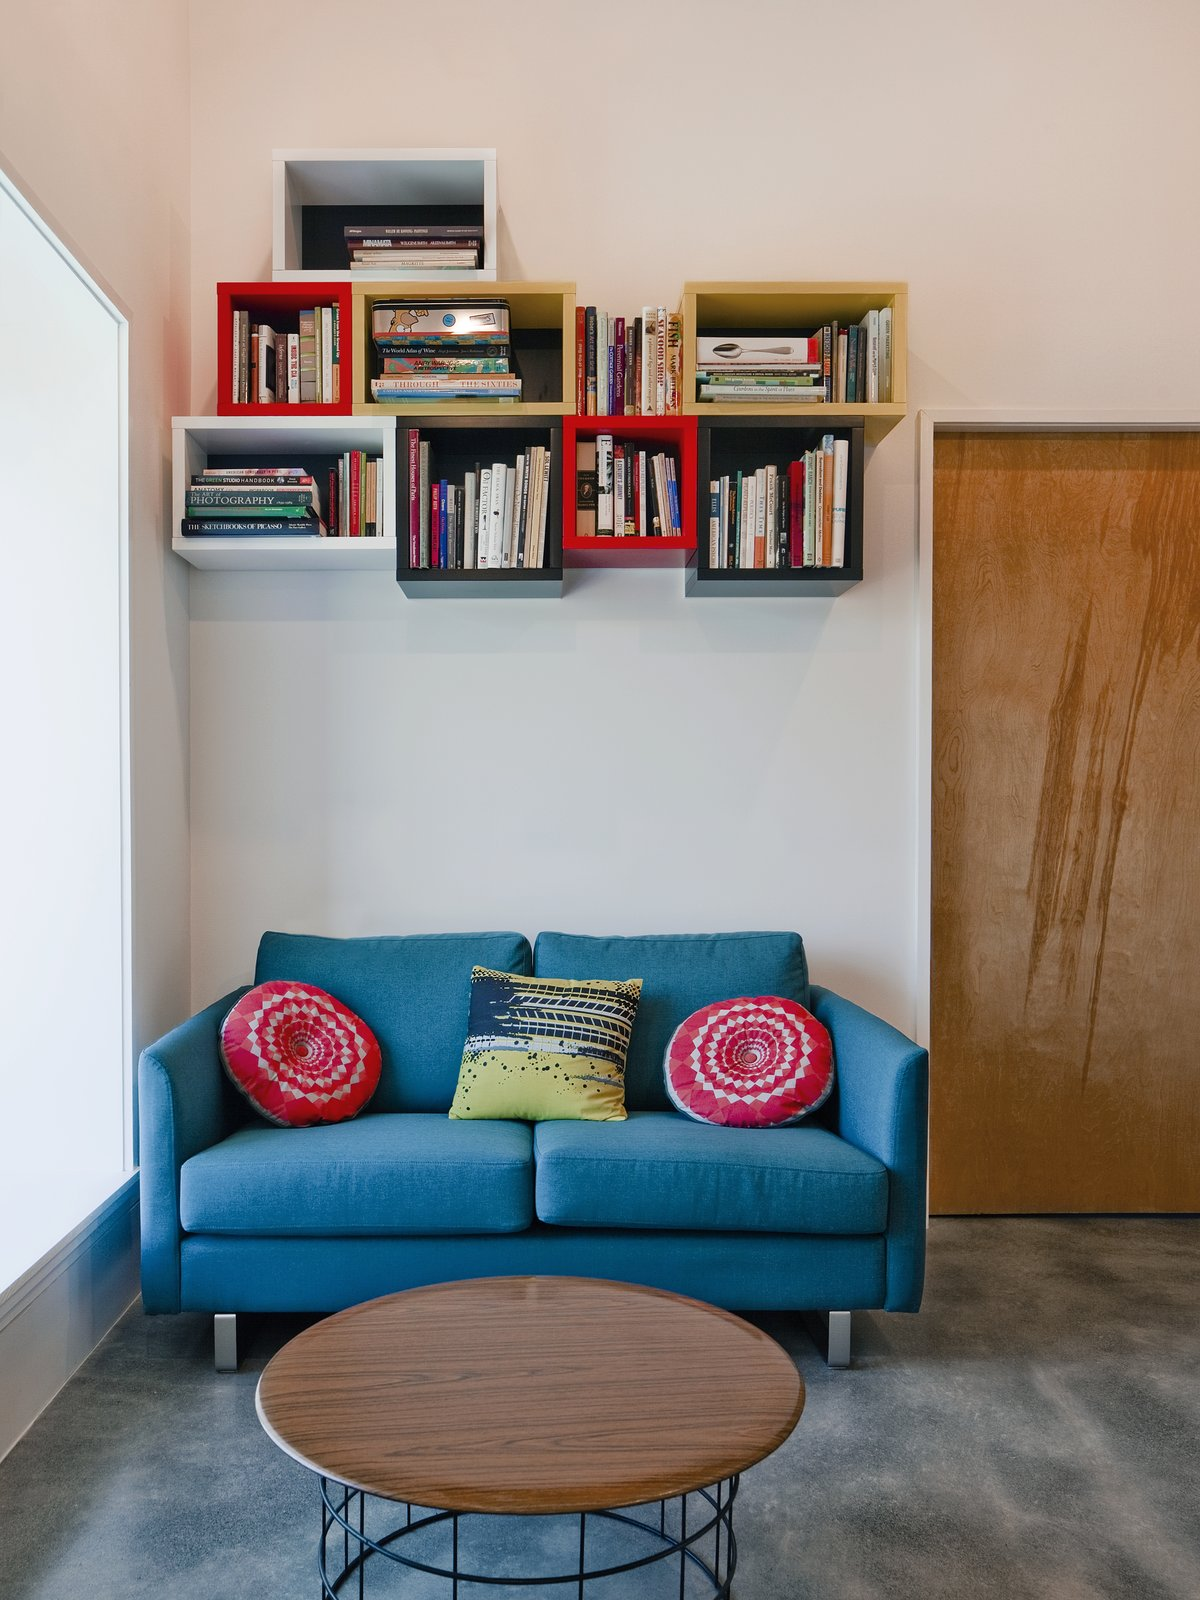 """Storage Room and Shelves Storage Type However, relying solely on concrete was not the best use of the budget, so Mulvena """"balanced the concrete floors and highlights with a simple palette of affordable but industrial materials: black steel and plywood."""" The couch is by BoConcept.  Hudson Valley Dream Retreat by Kelly Dawson"""